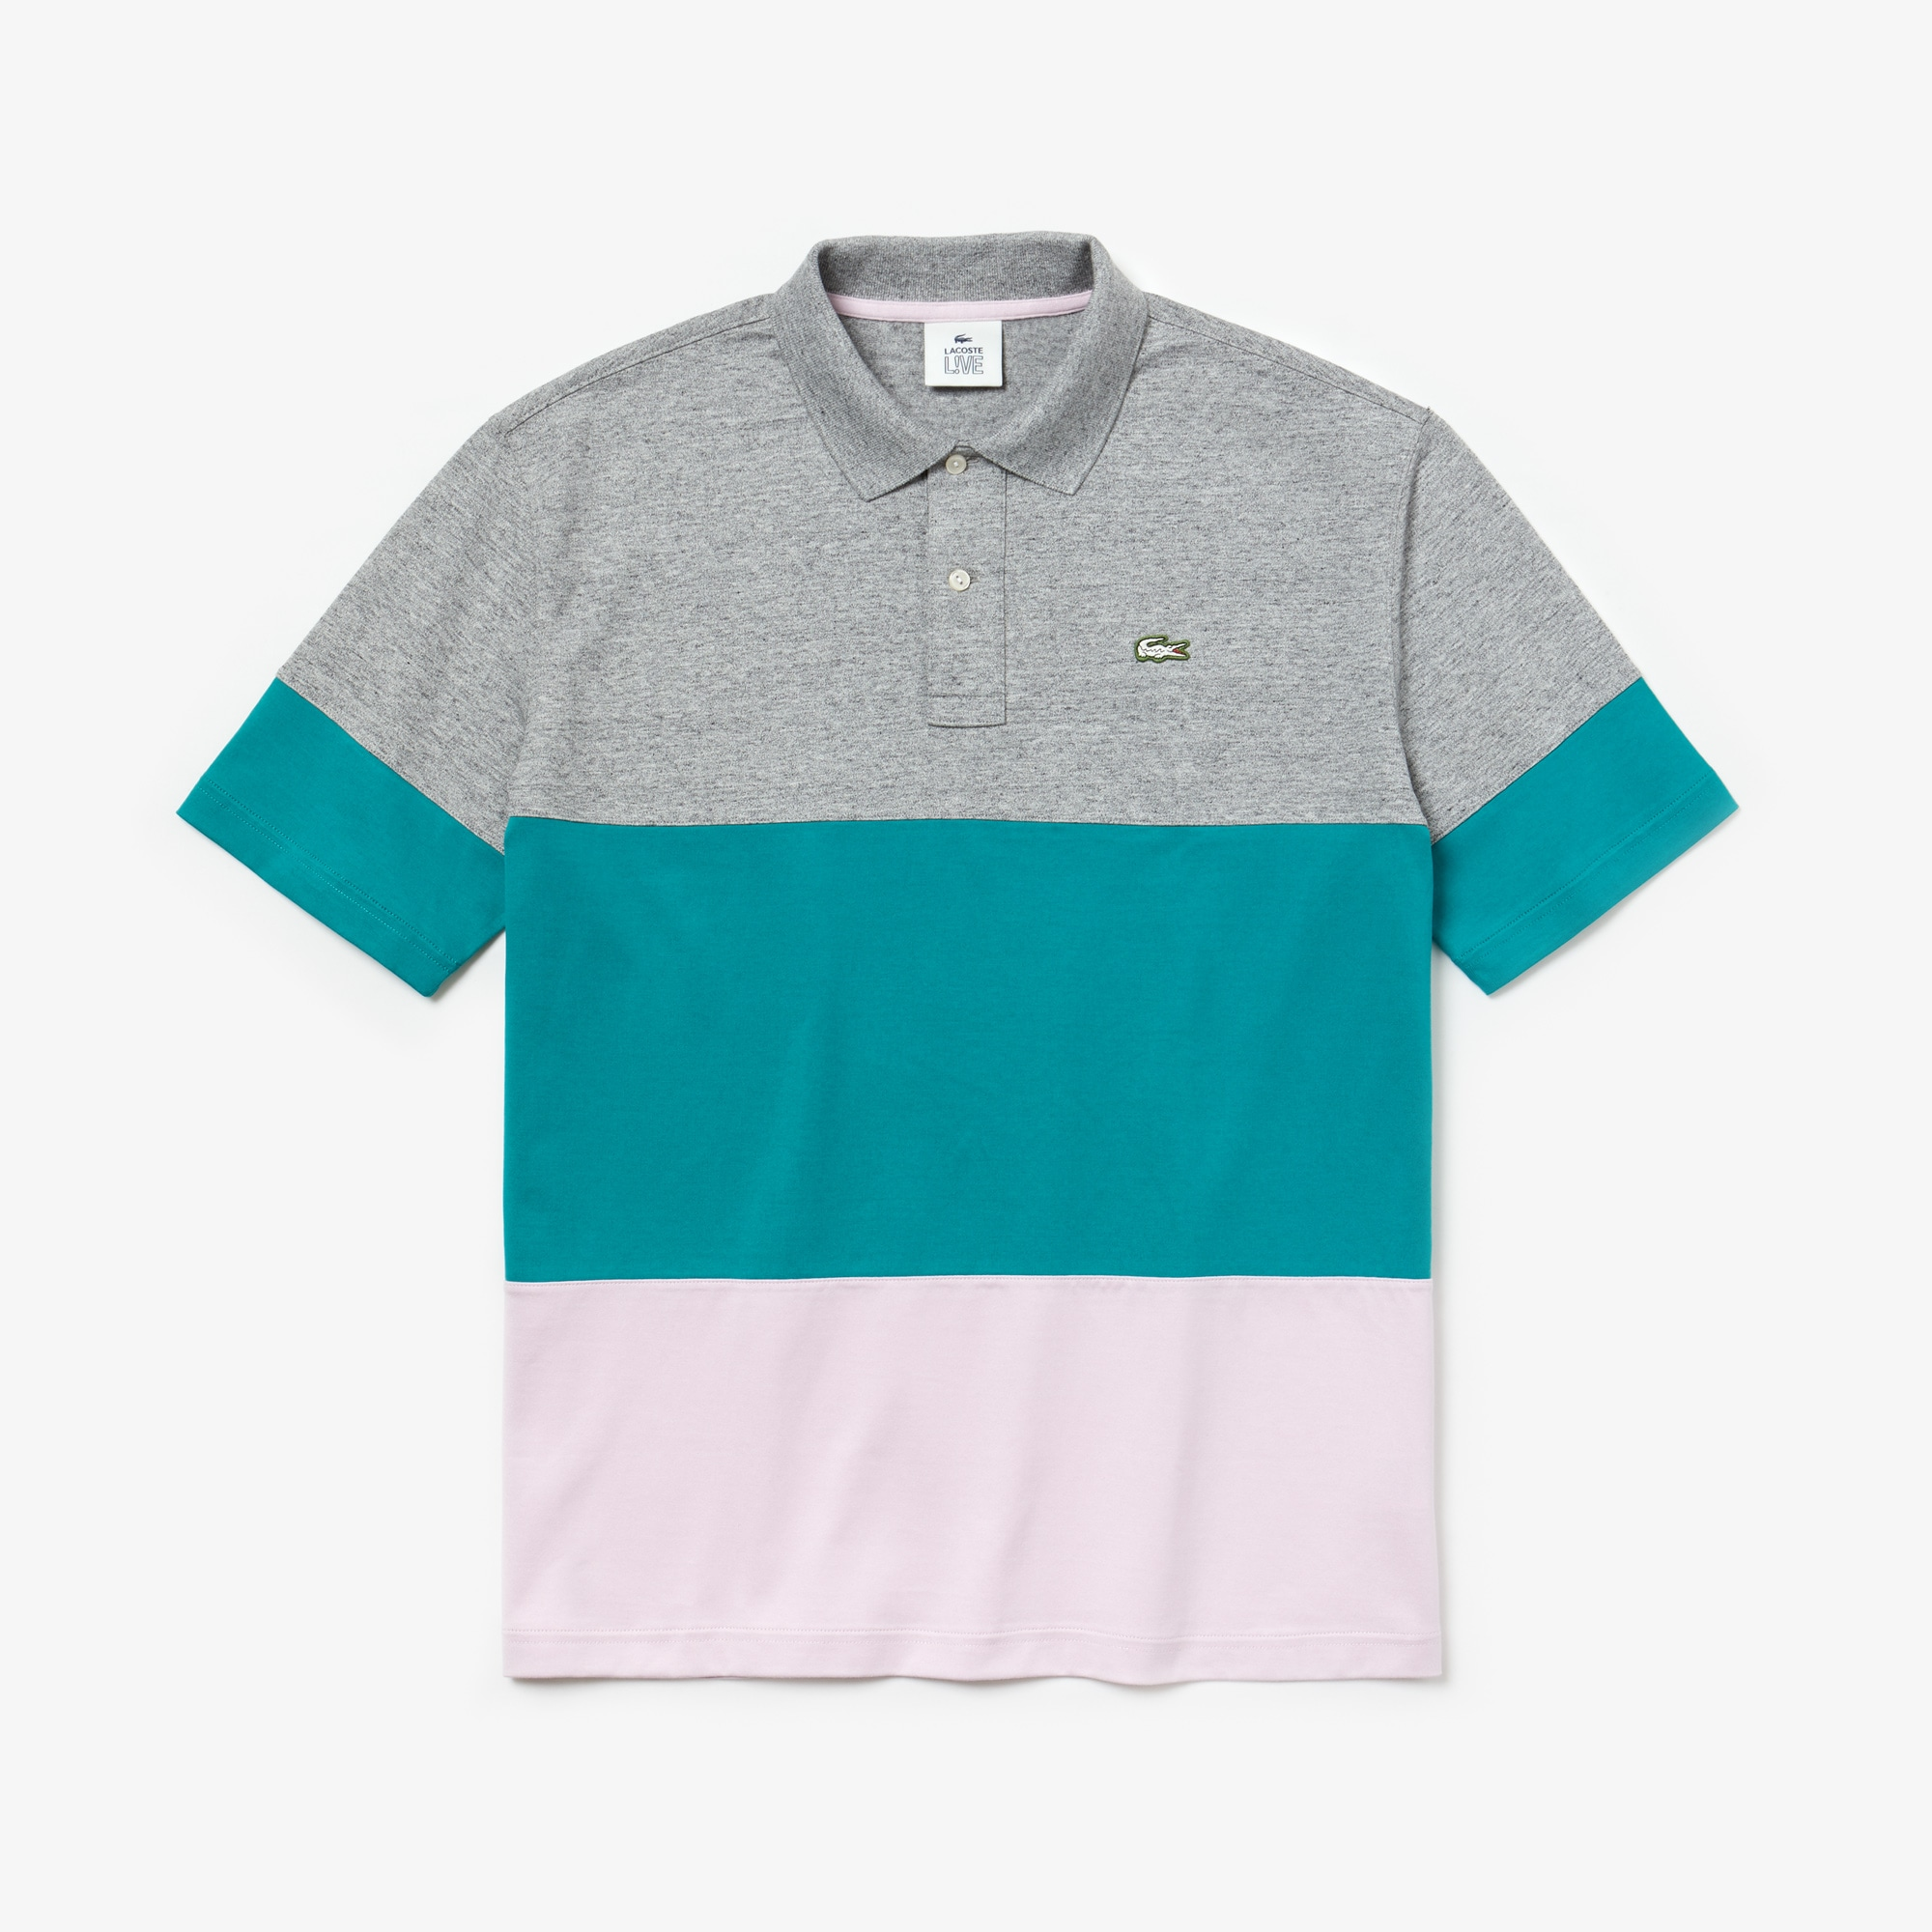 Men's Lacoste LIVE Loose Fit Colourblock Cotton Polo Shirt